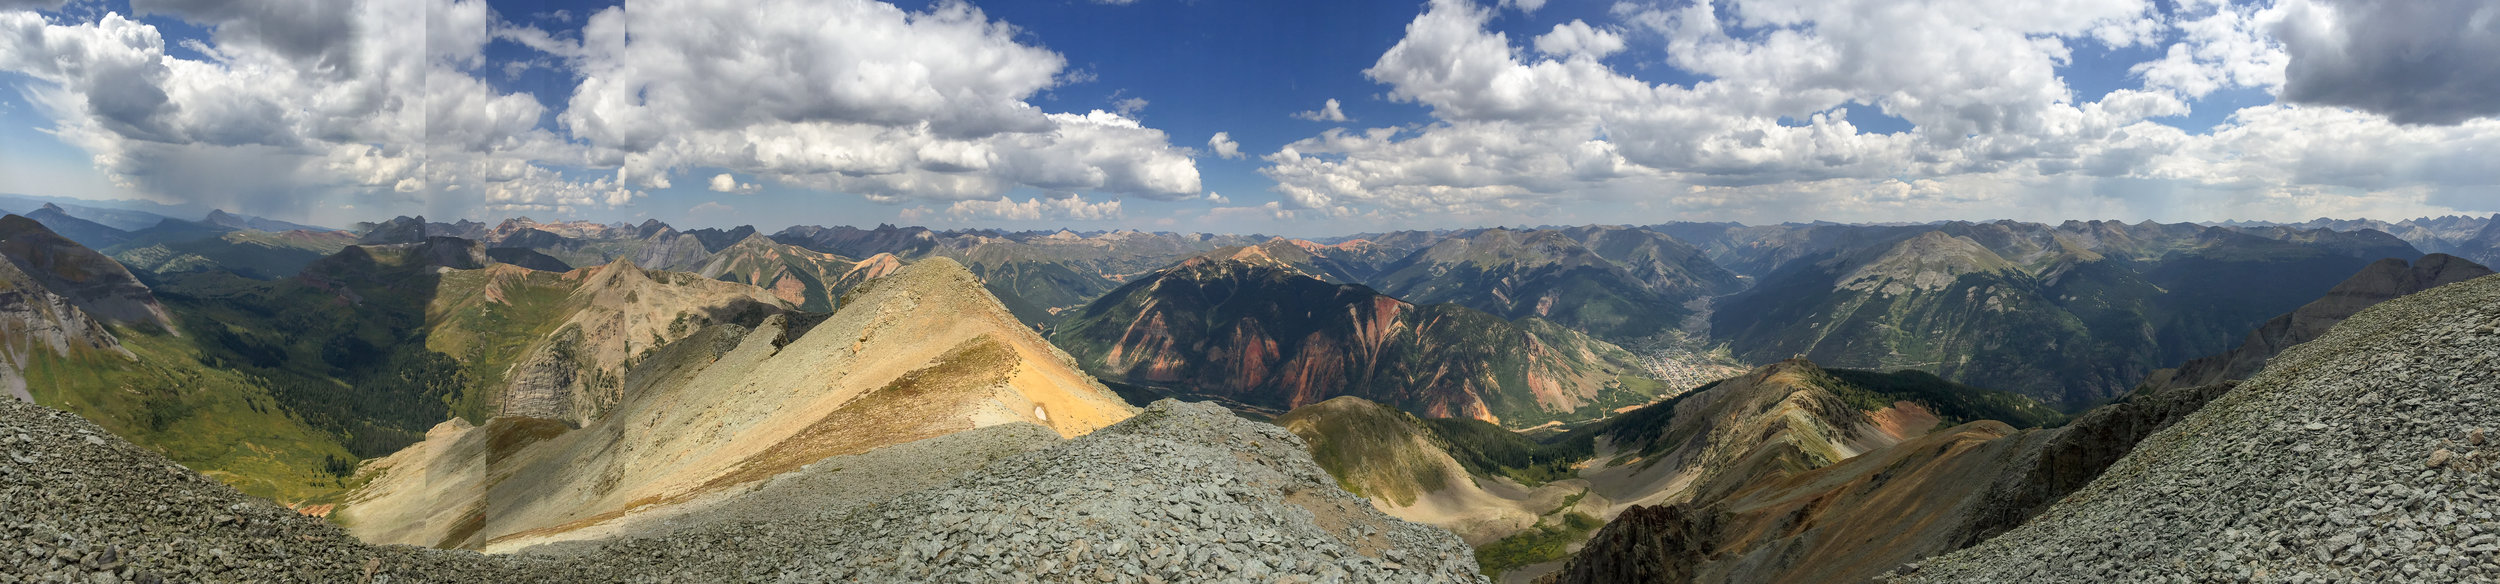 SPECTACULAR SUMMIT VIEW. (YOU CAN SEE SILVERTON, CO IN THE VALLEY ON THE RIGHT)